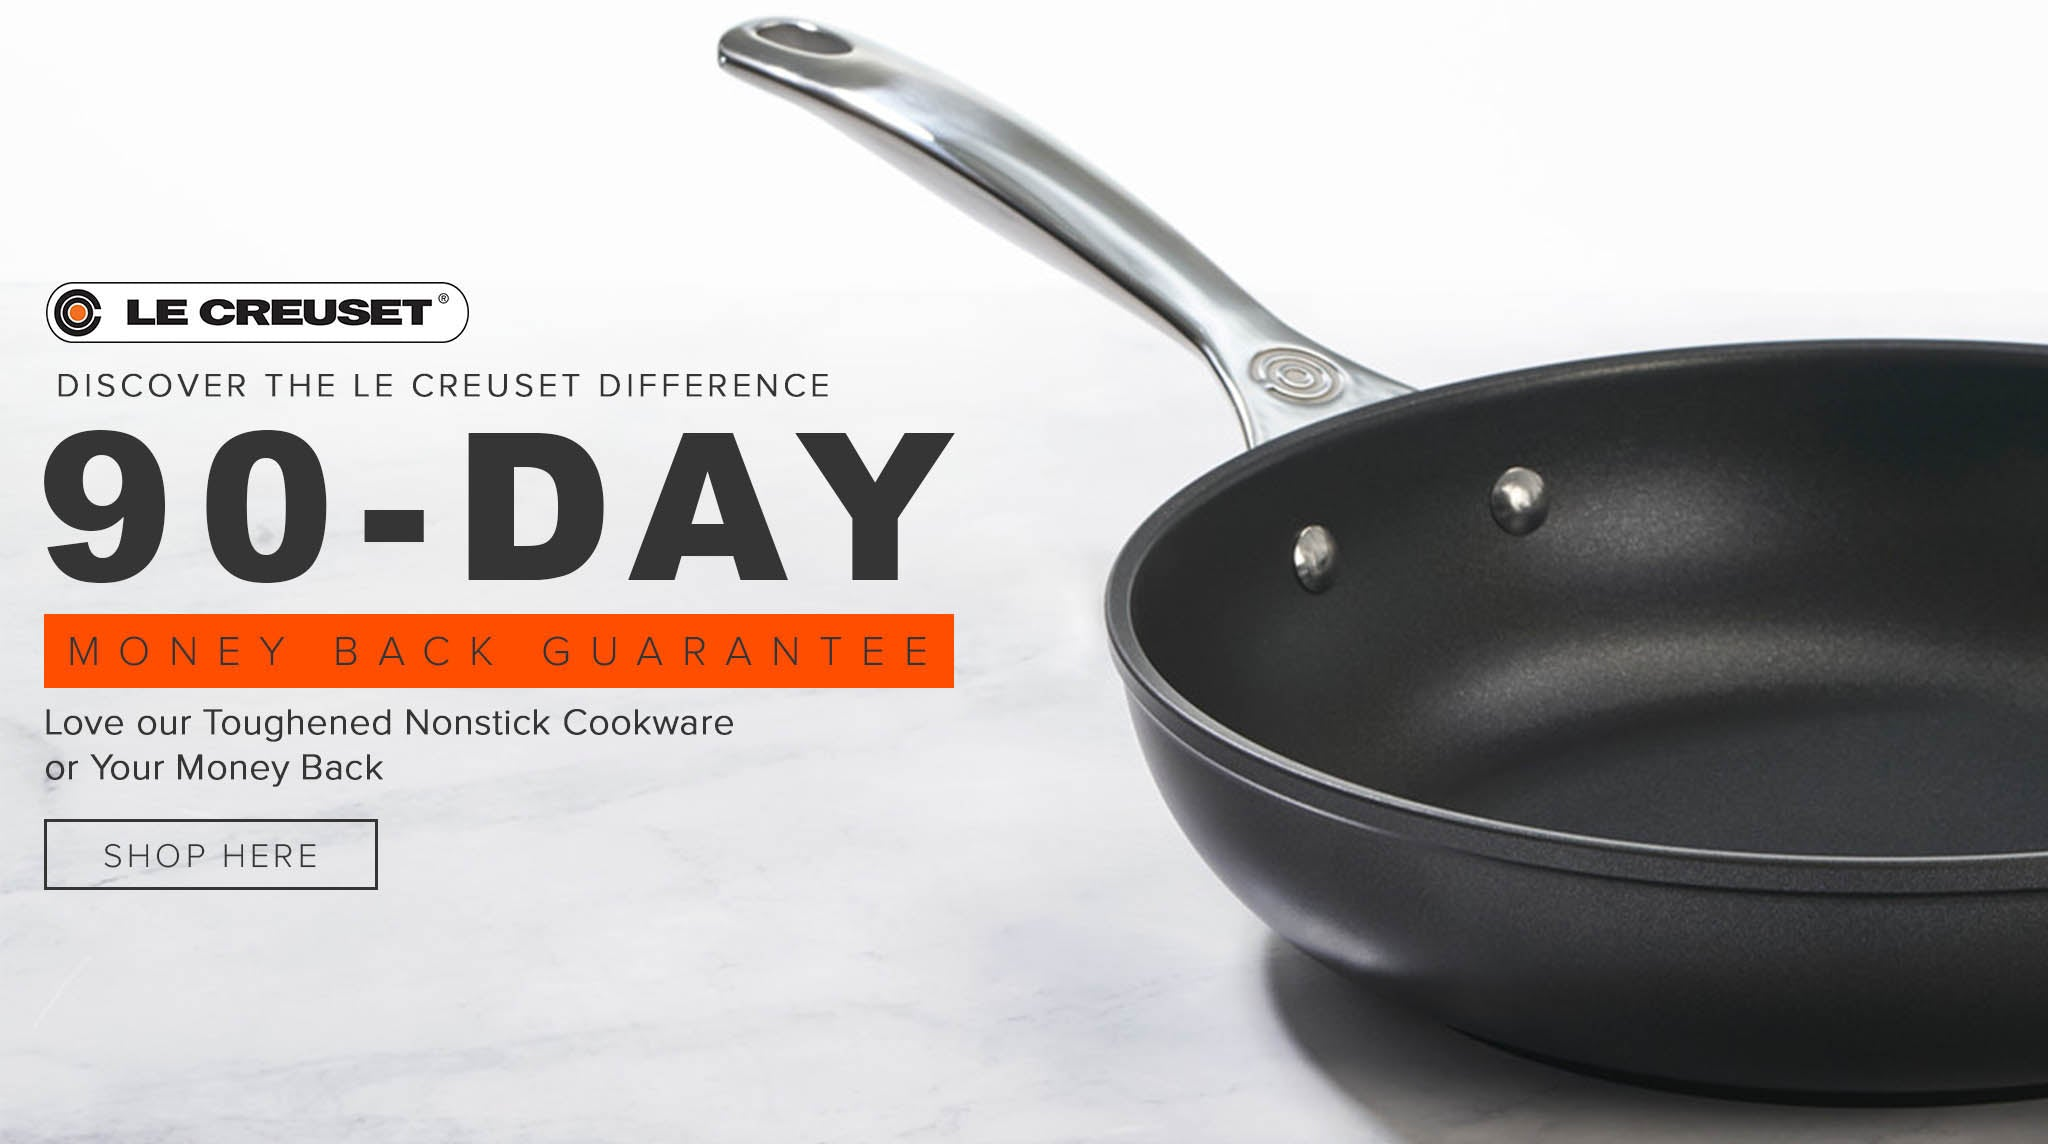 LE CREUSET TOUGHENED NONSTICK MONEY BACK